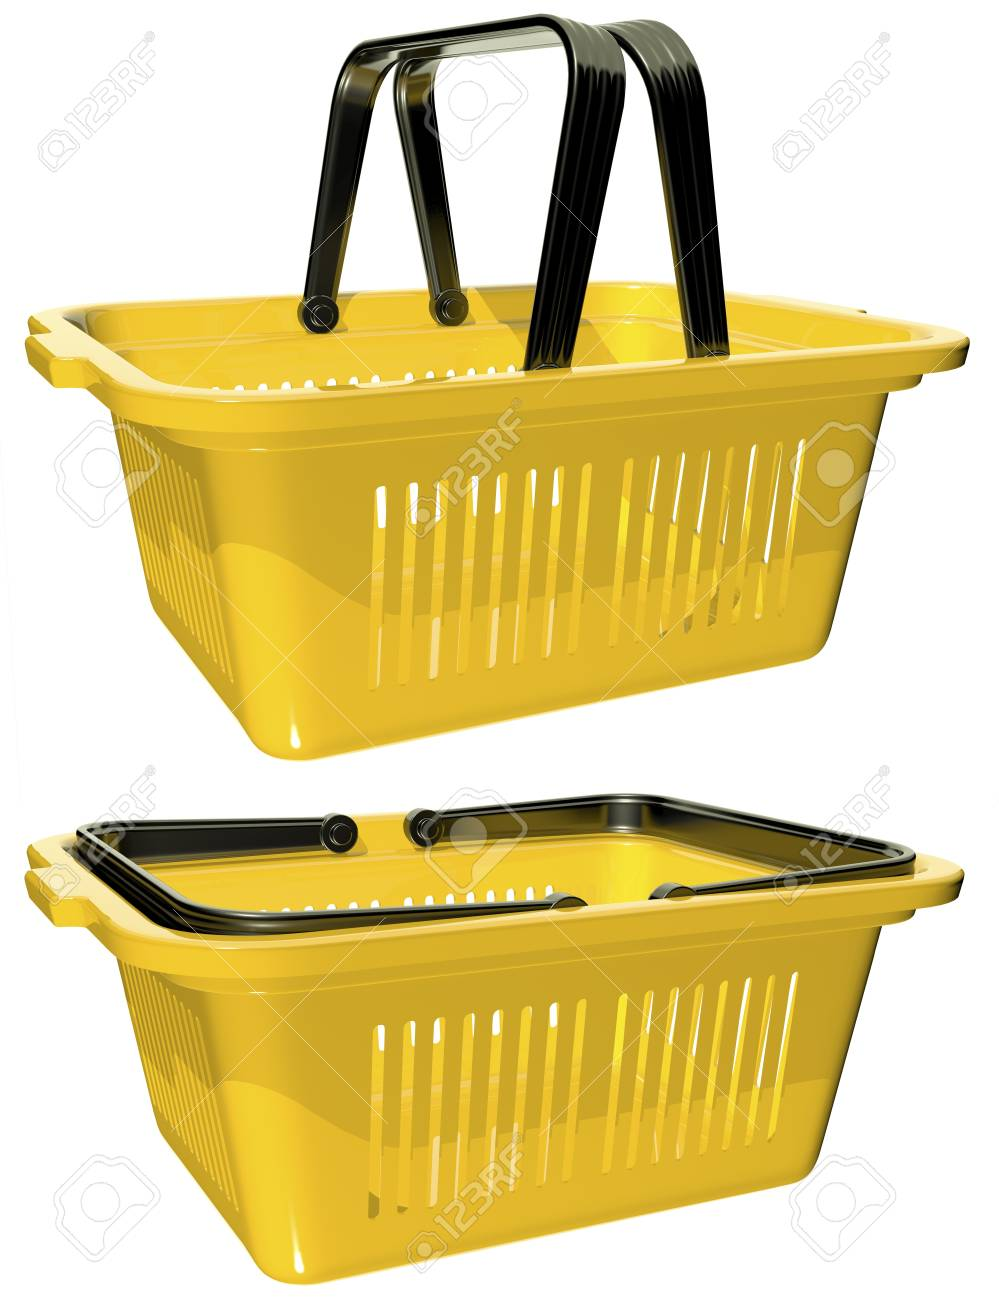 plastic yellow basket with handles for shopping Stock Photo - 17174698